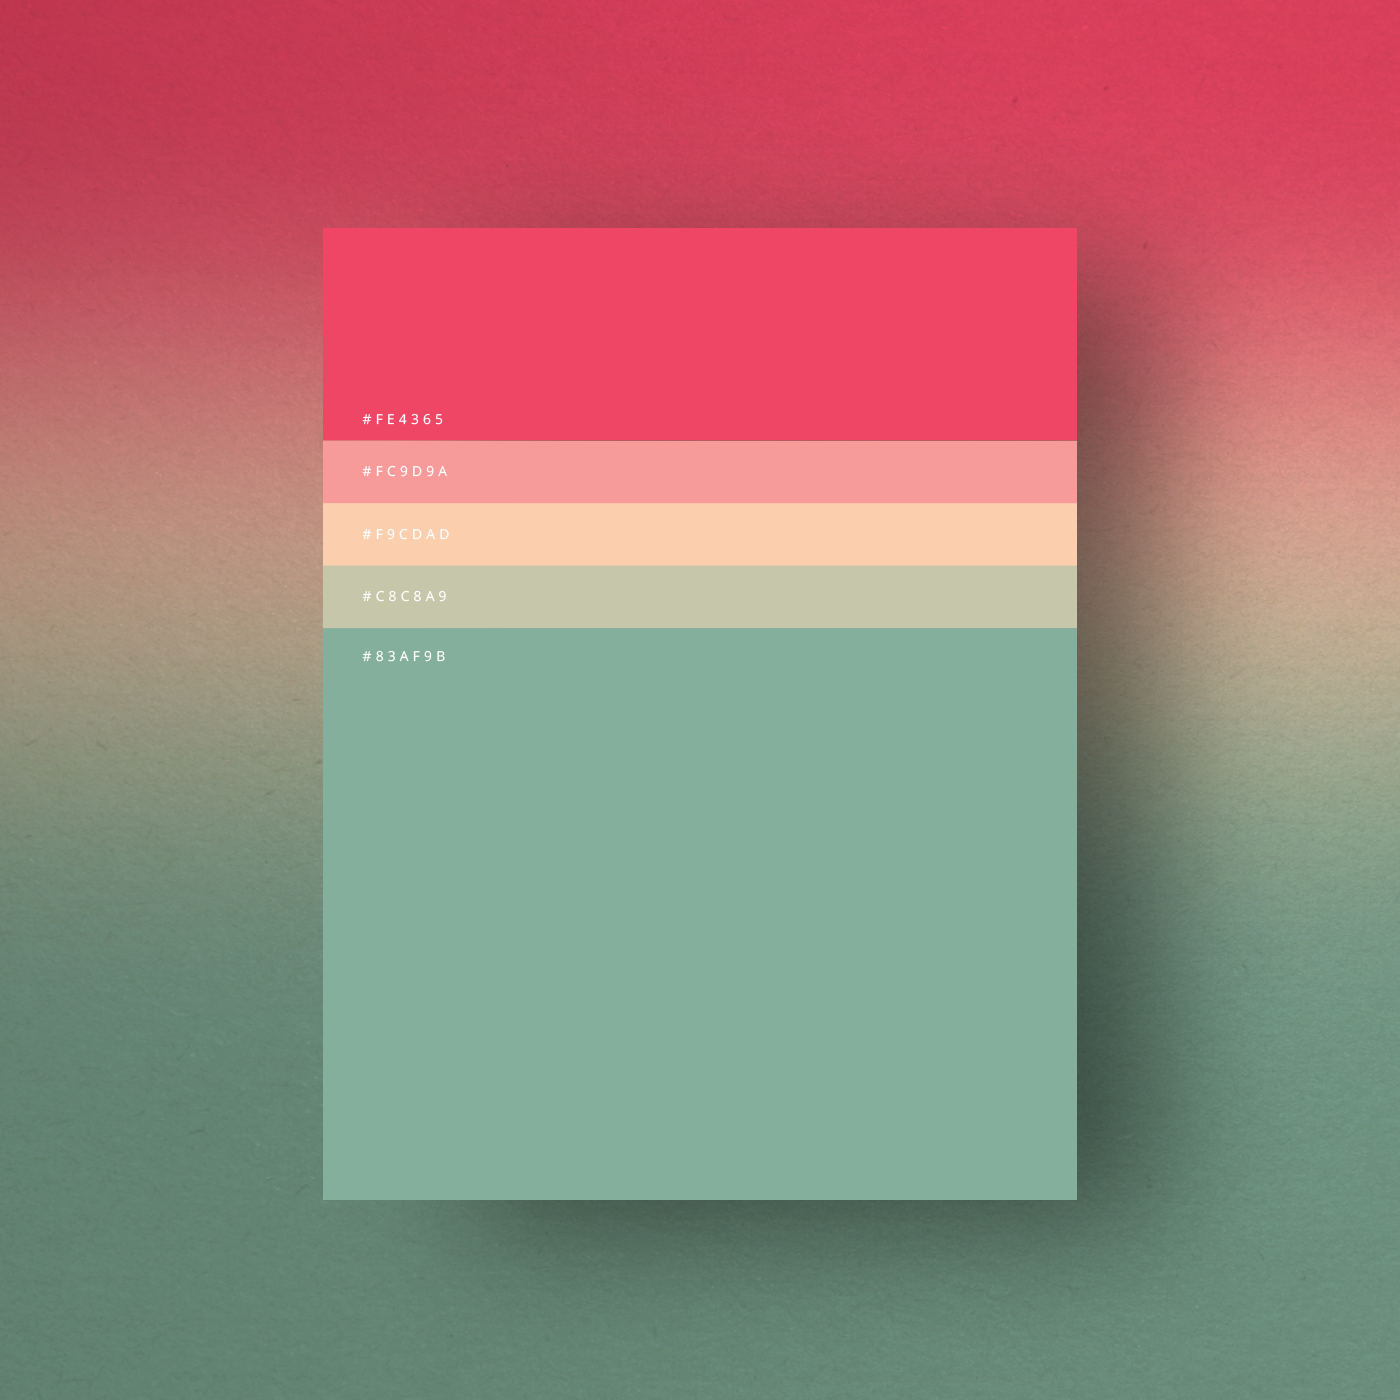 Milan Based Creative Director Duminda Perera Has Created A Series Of Minimalist Color Palette Posters That Are Both Handy And Beautiful